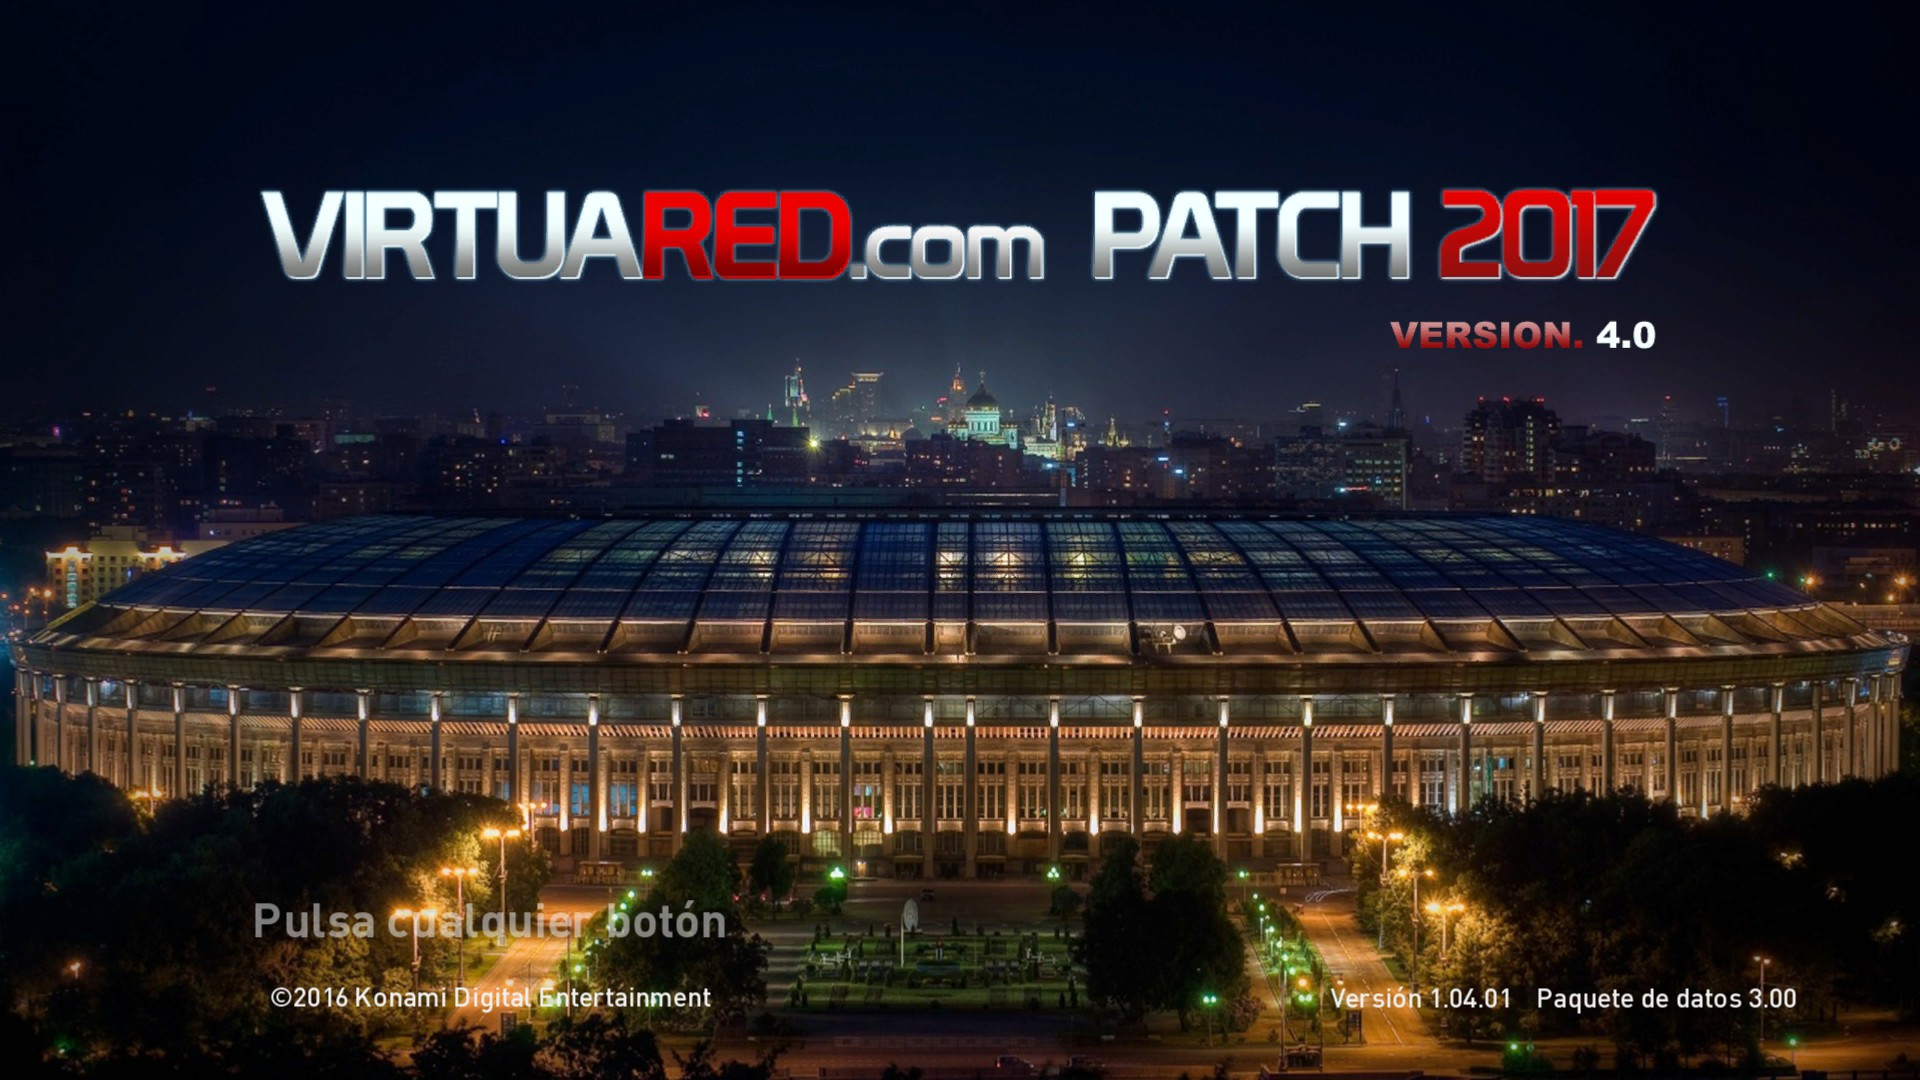 VirtuaRED.com Patch 2017 v4.0 ¡YA DISPONIBLE!